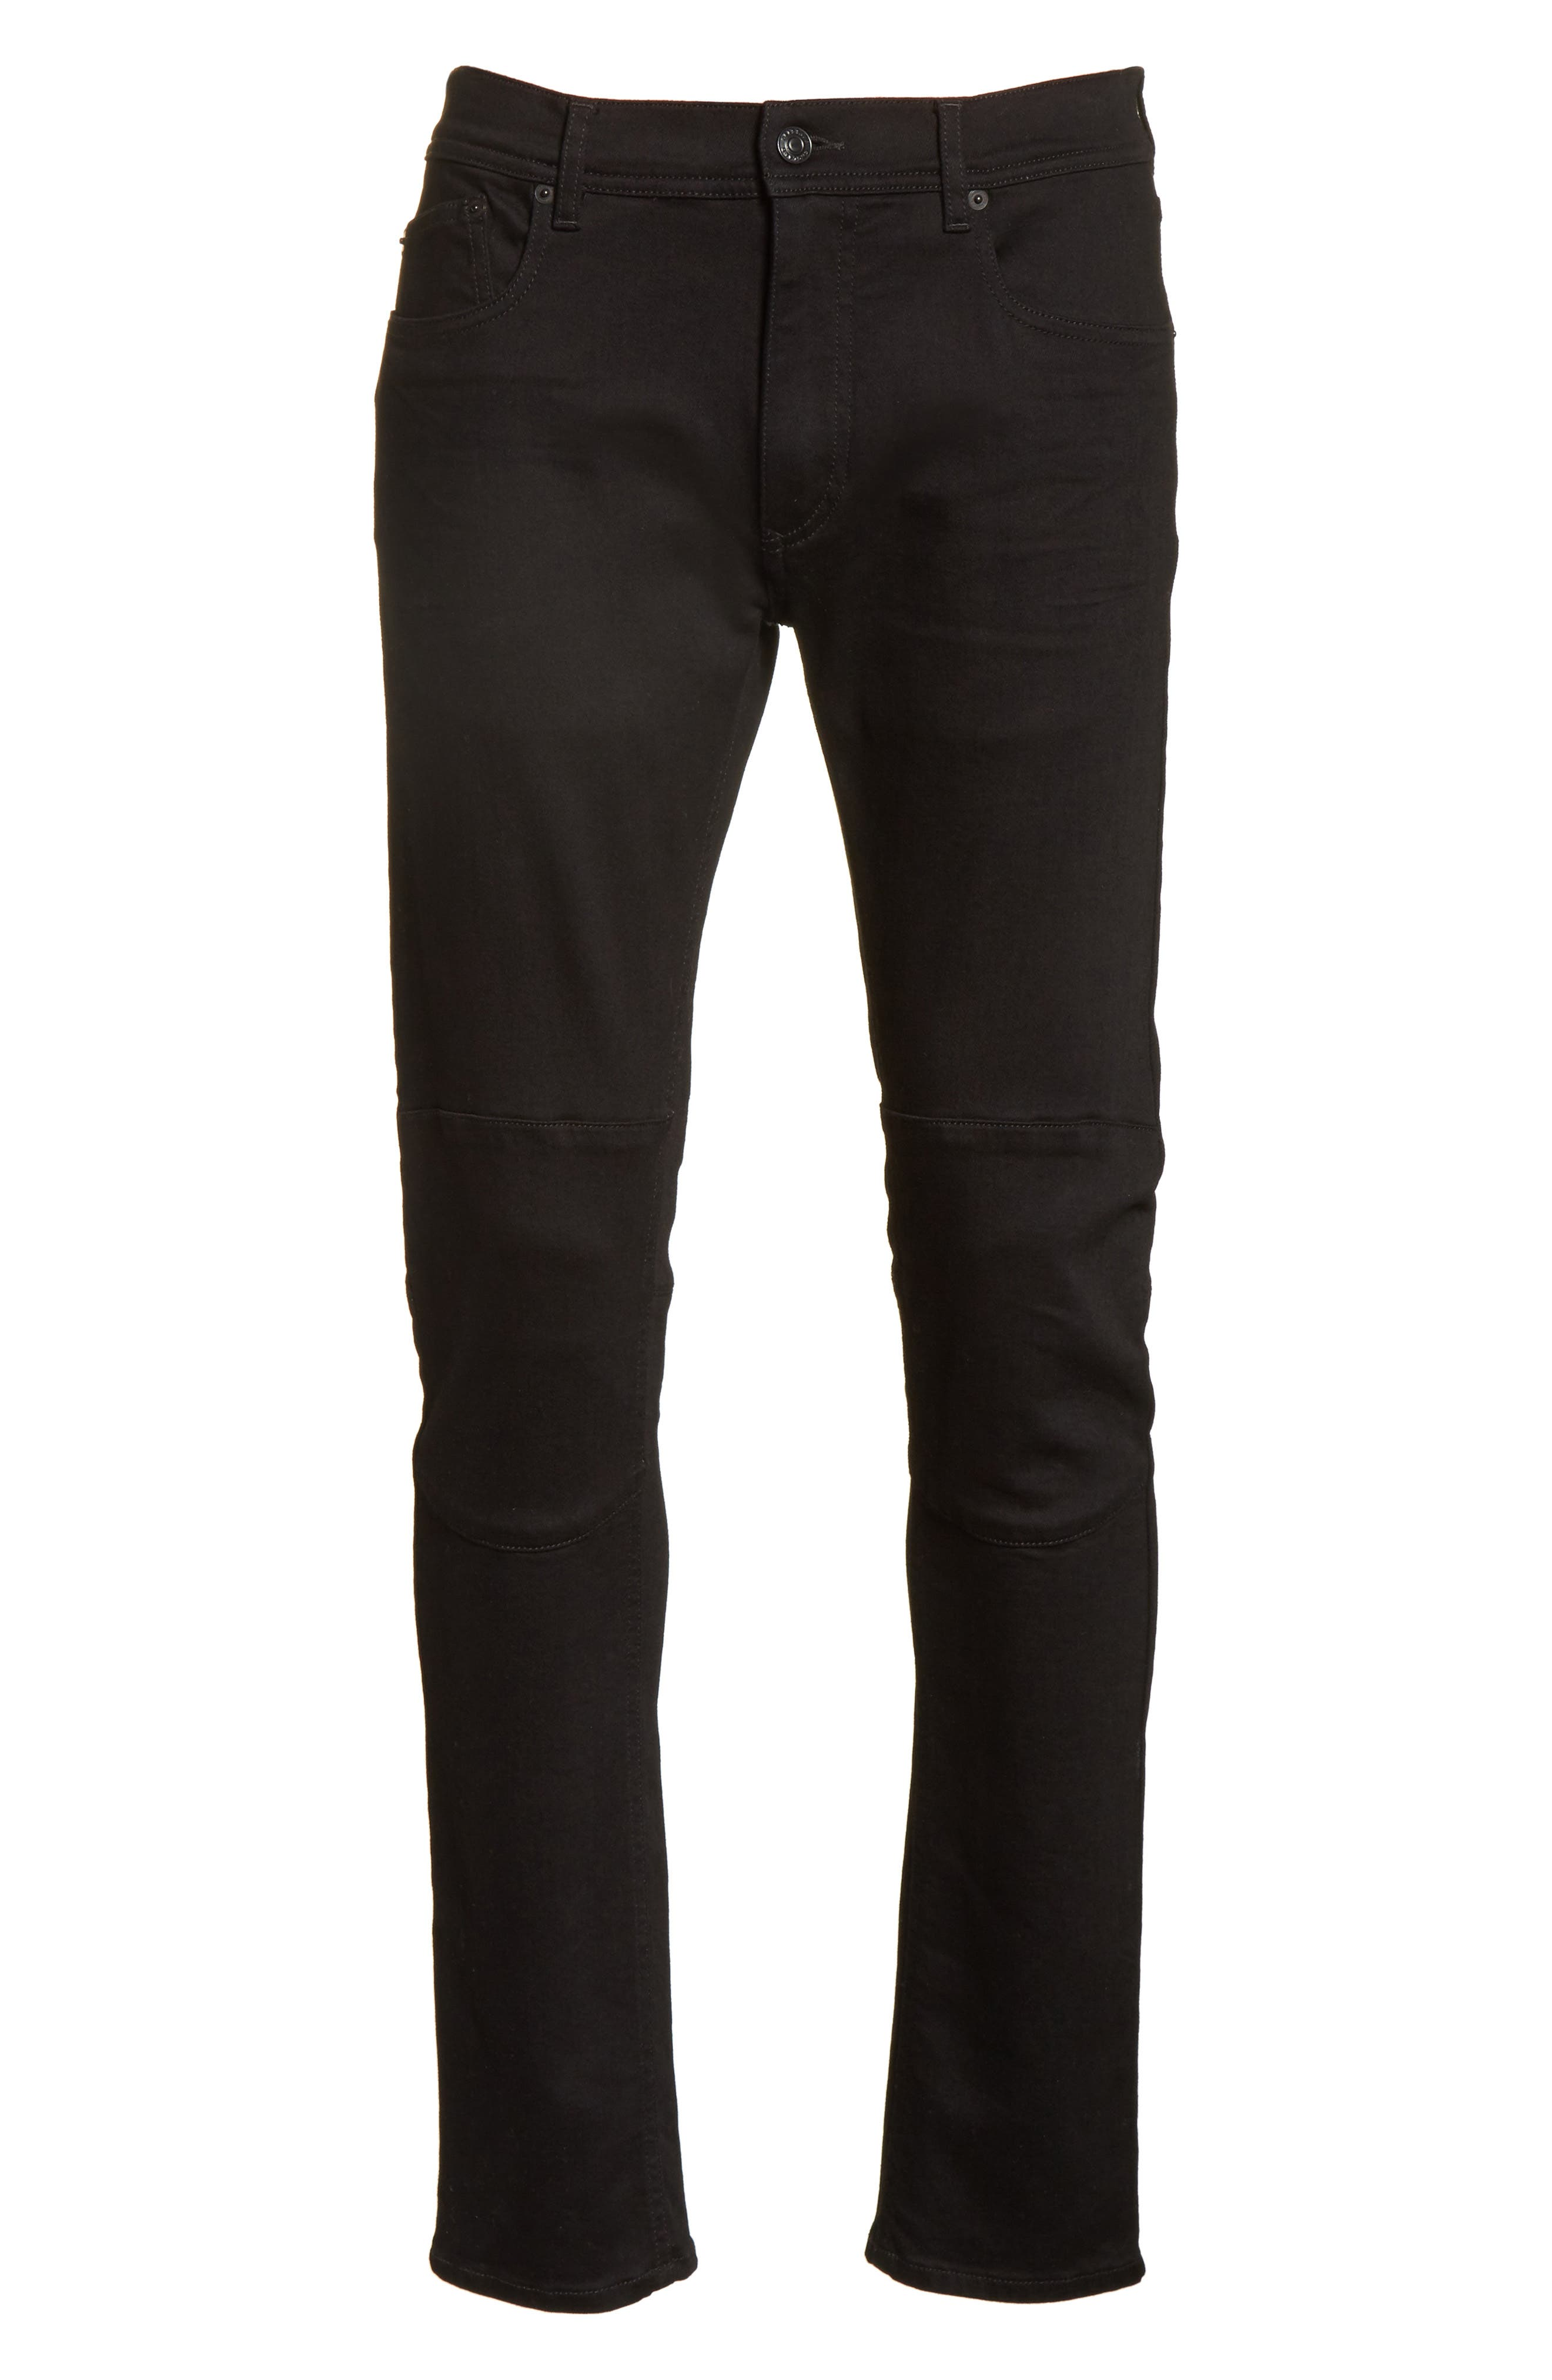 Tattenhall Slim Fit Jeans,                             Alternate thumbnail 6, color,                             Rinse Black